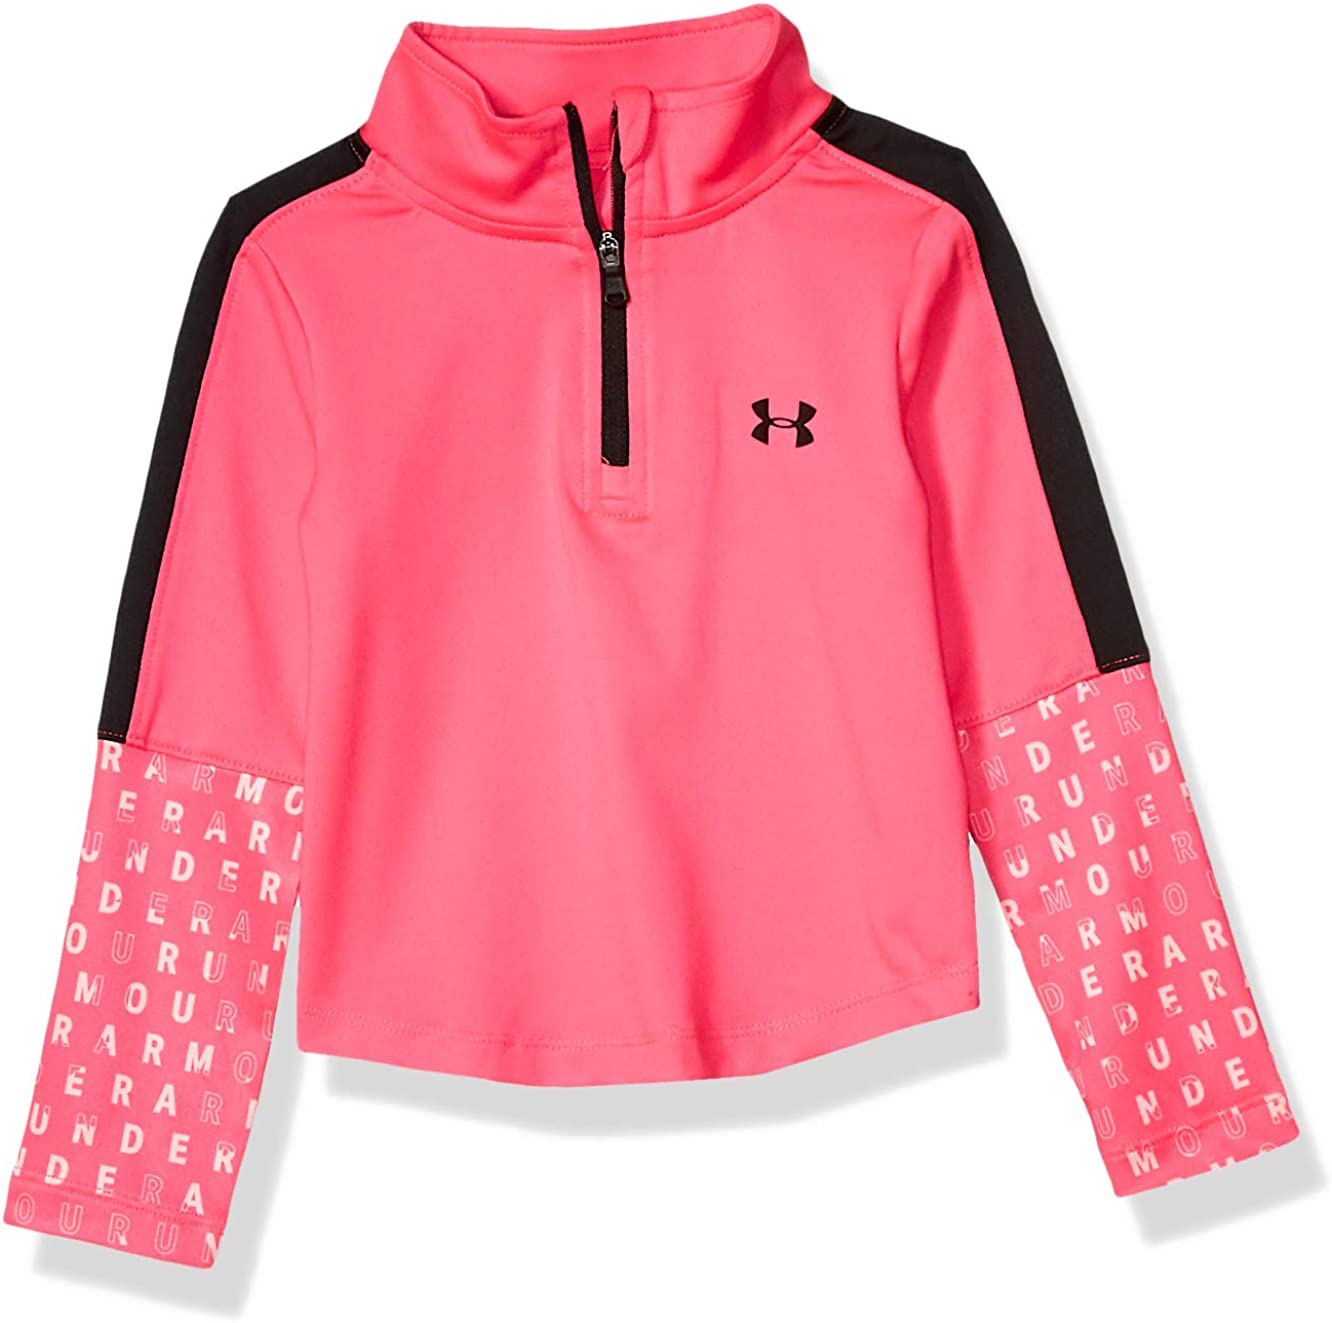 Under Armour Girls' 1/4 Zip Long Sleeve Pullover: Clothing